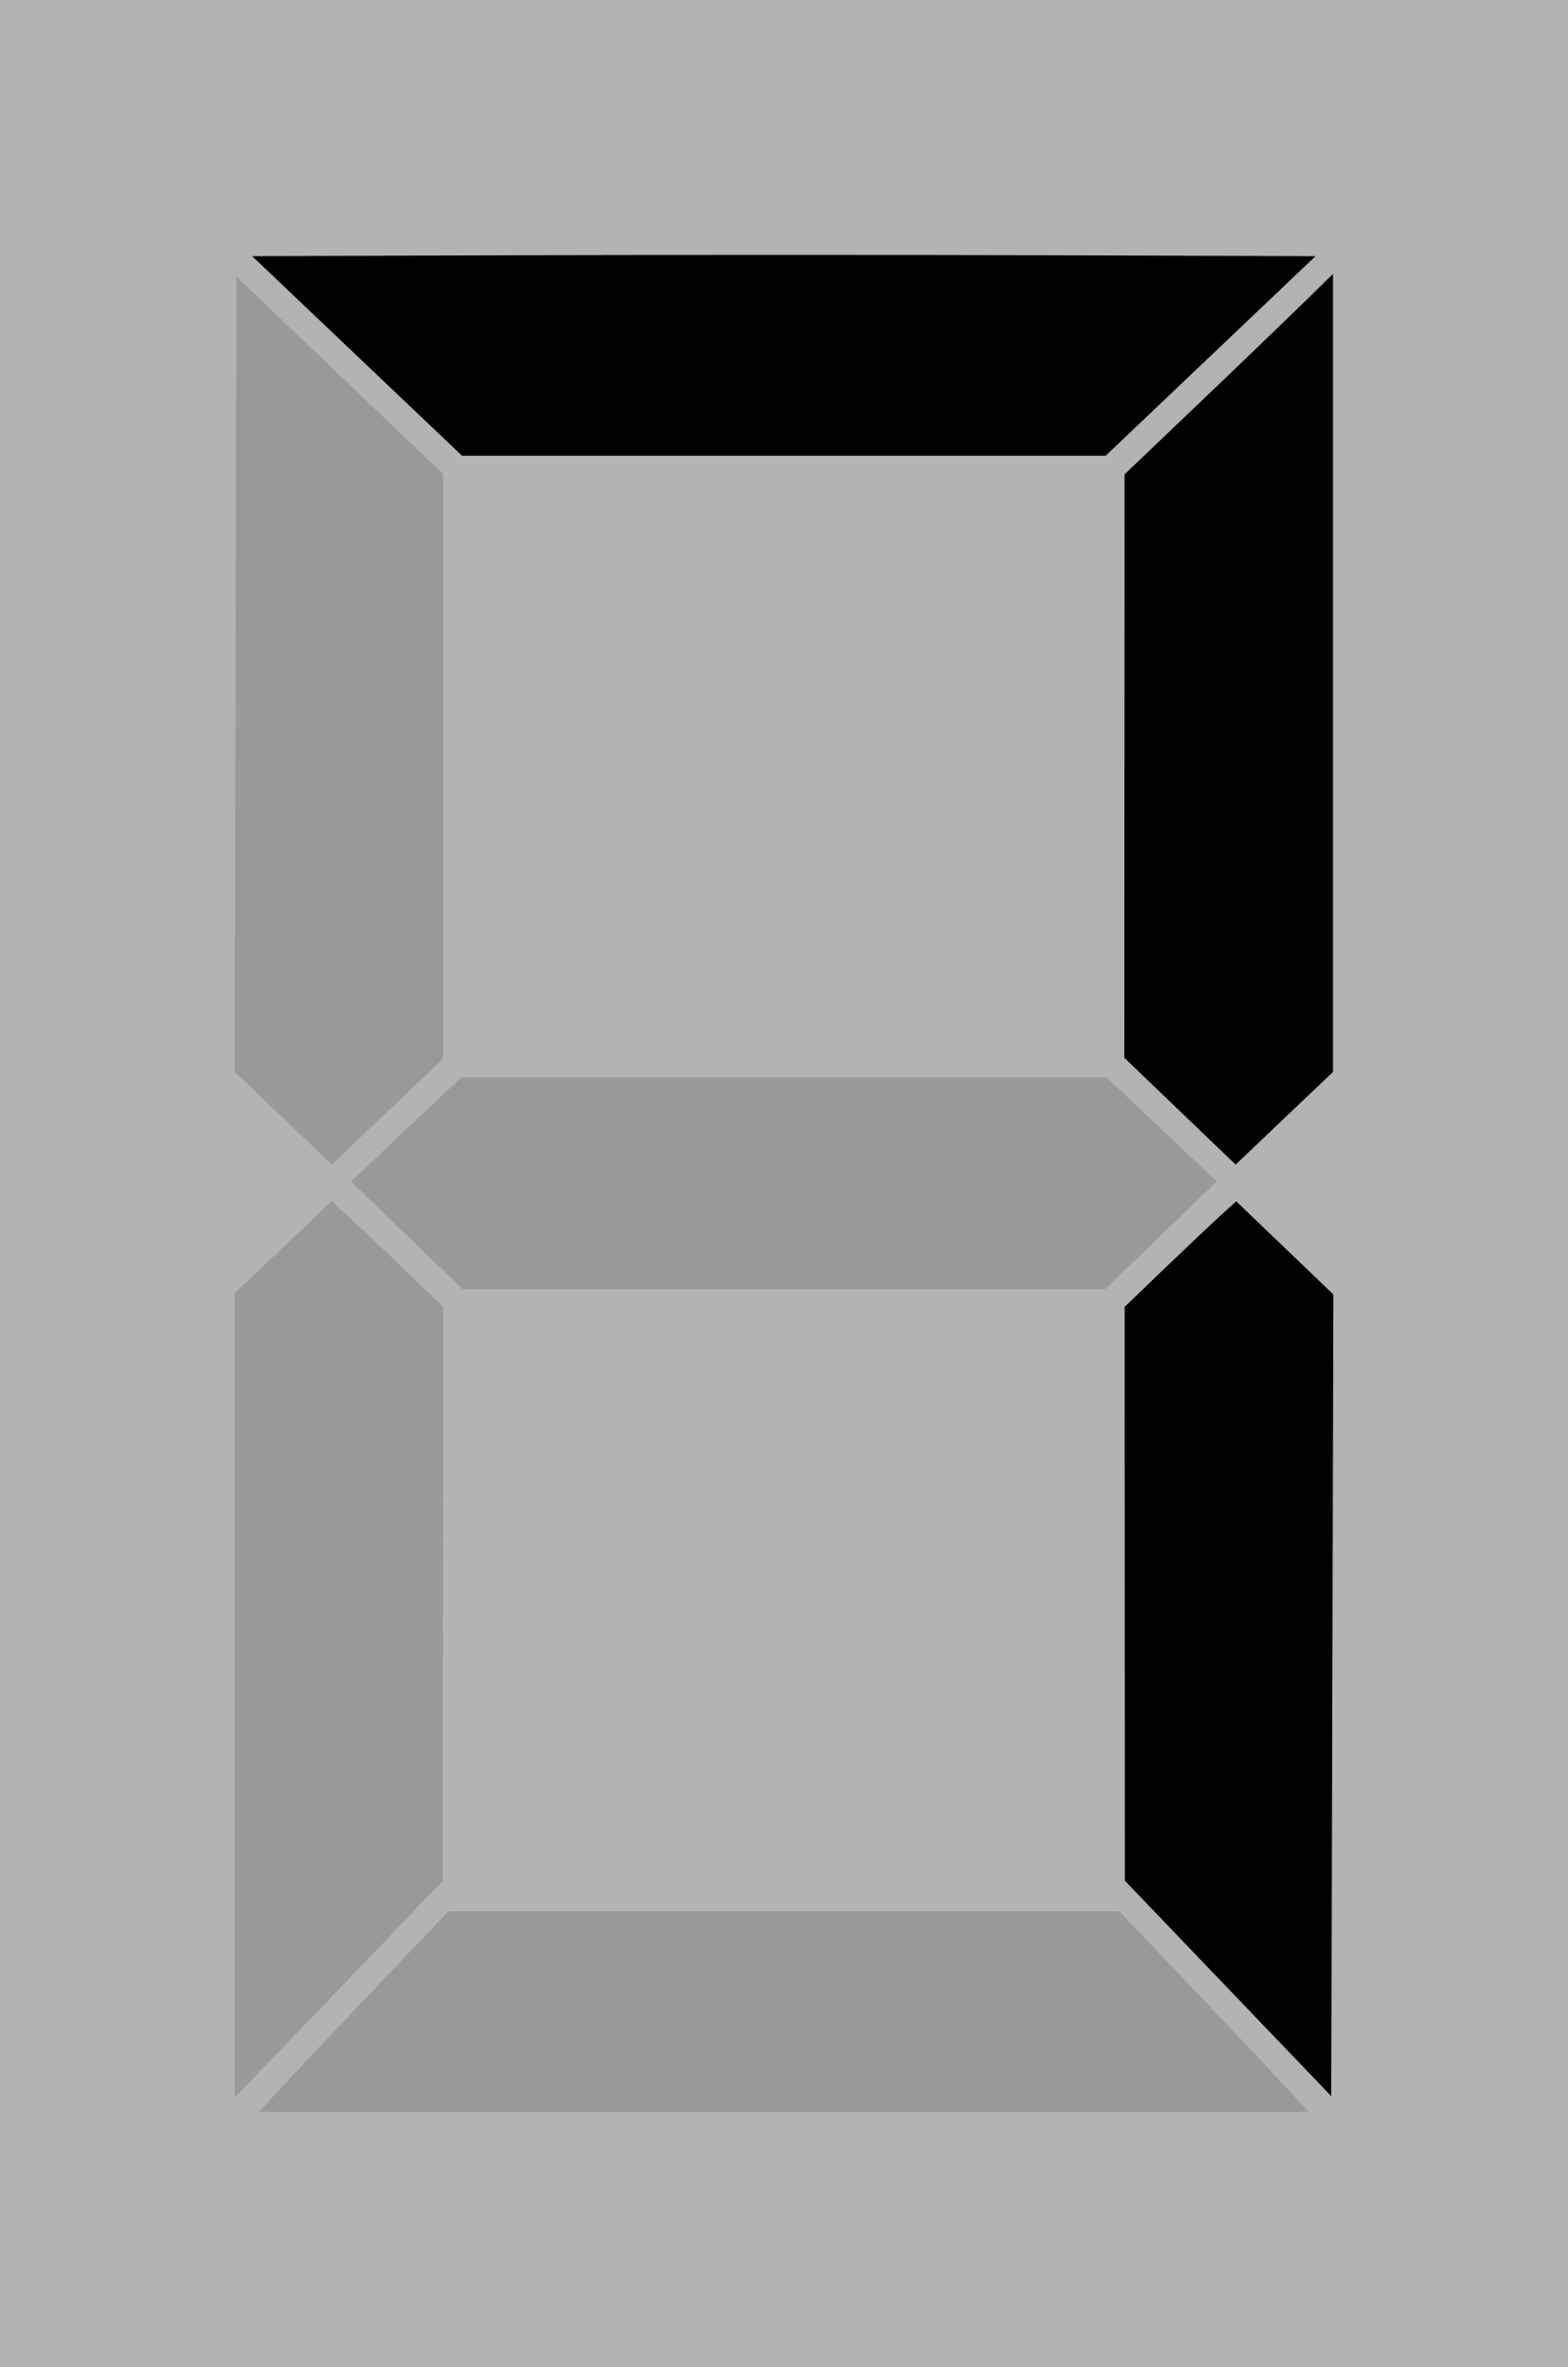 Seven segment display gray 7 by alex8664